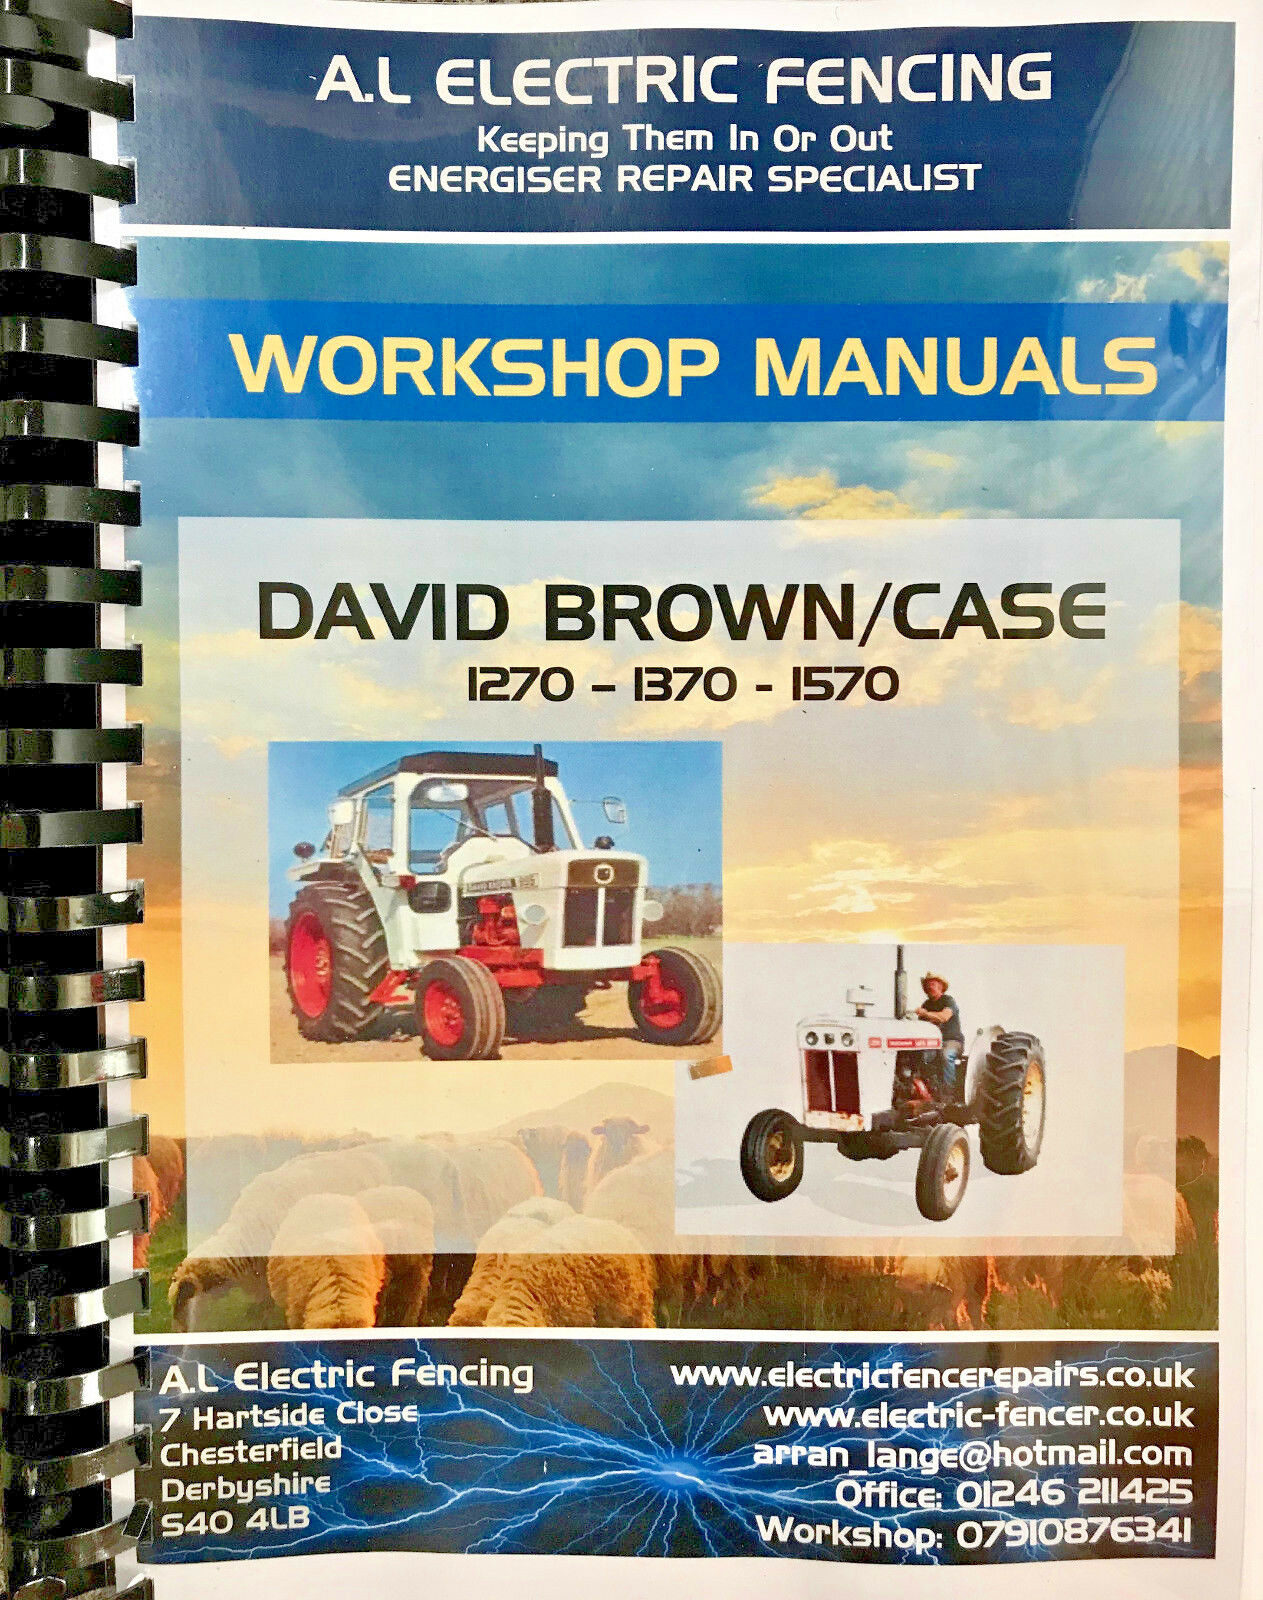 Massey 168 Workshop Manual Reprint 1856000m1 Massey Ferguson Tractor Manuals & Publications